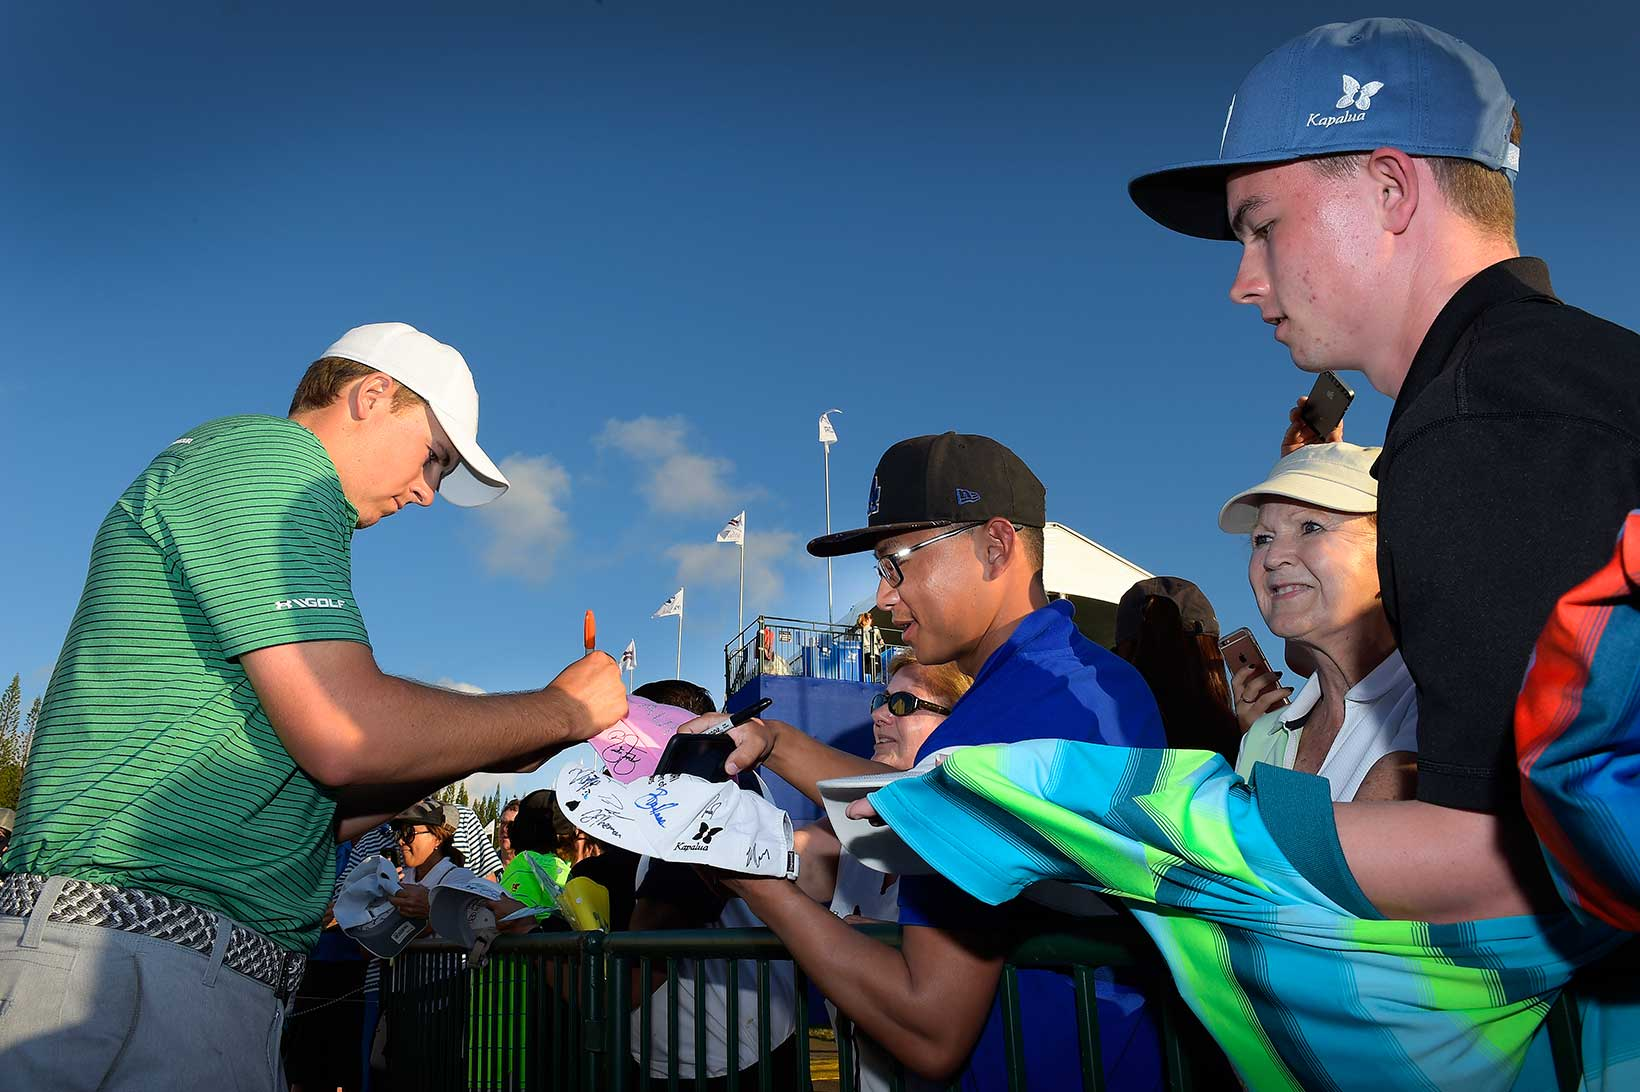 Jordan Signs Autographs After His Opening Round 66 at Kapalua